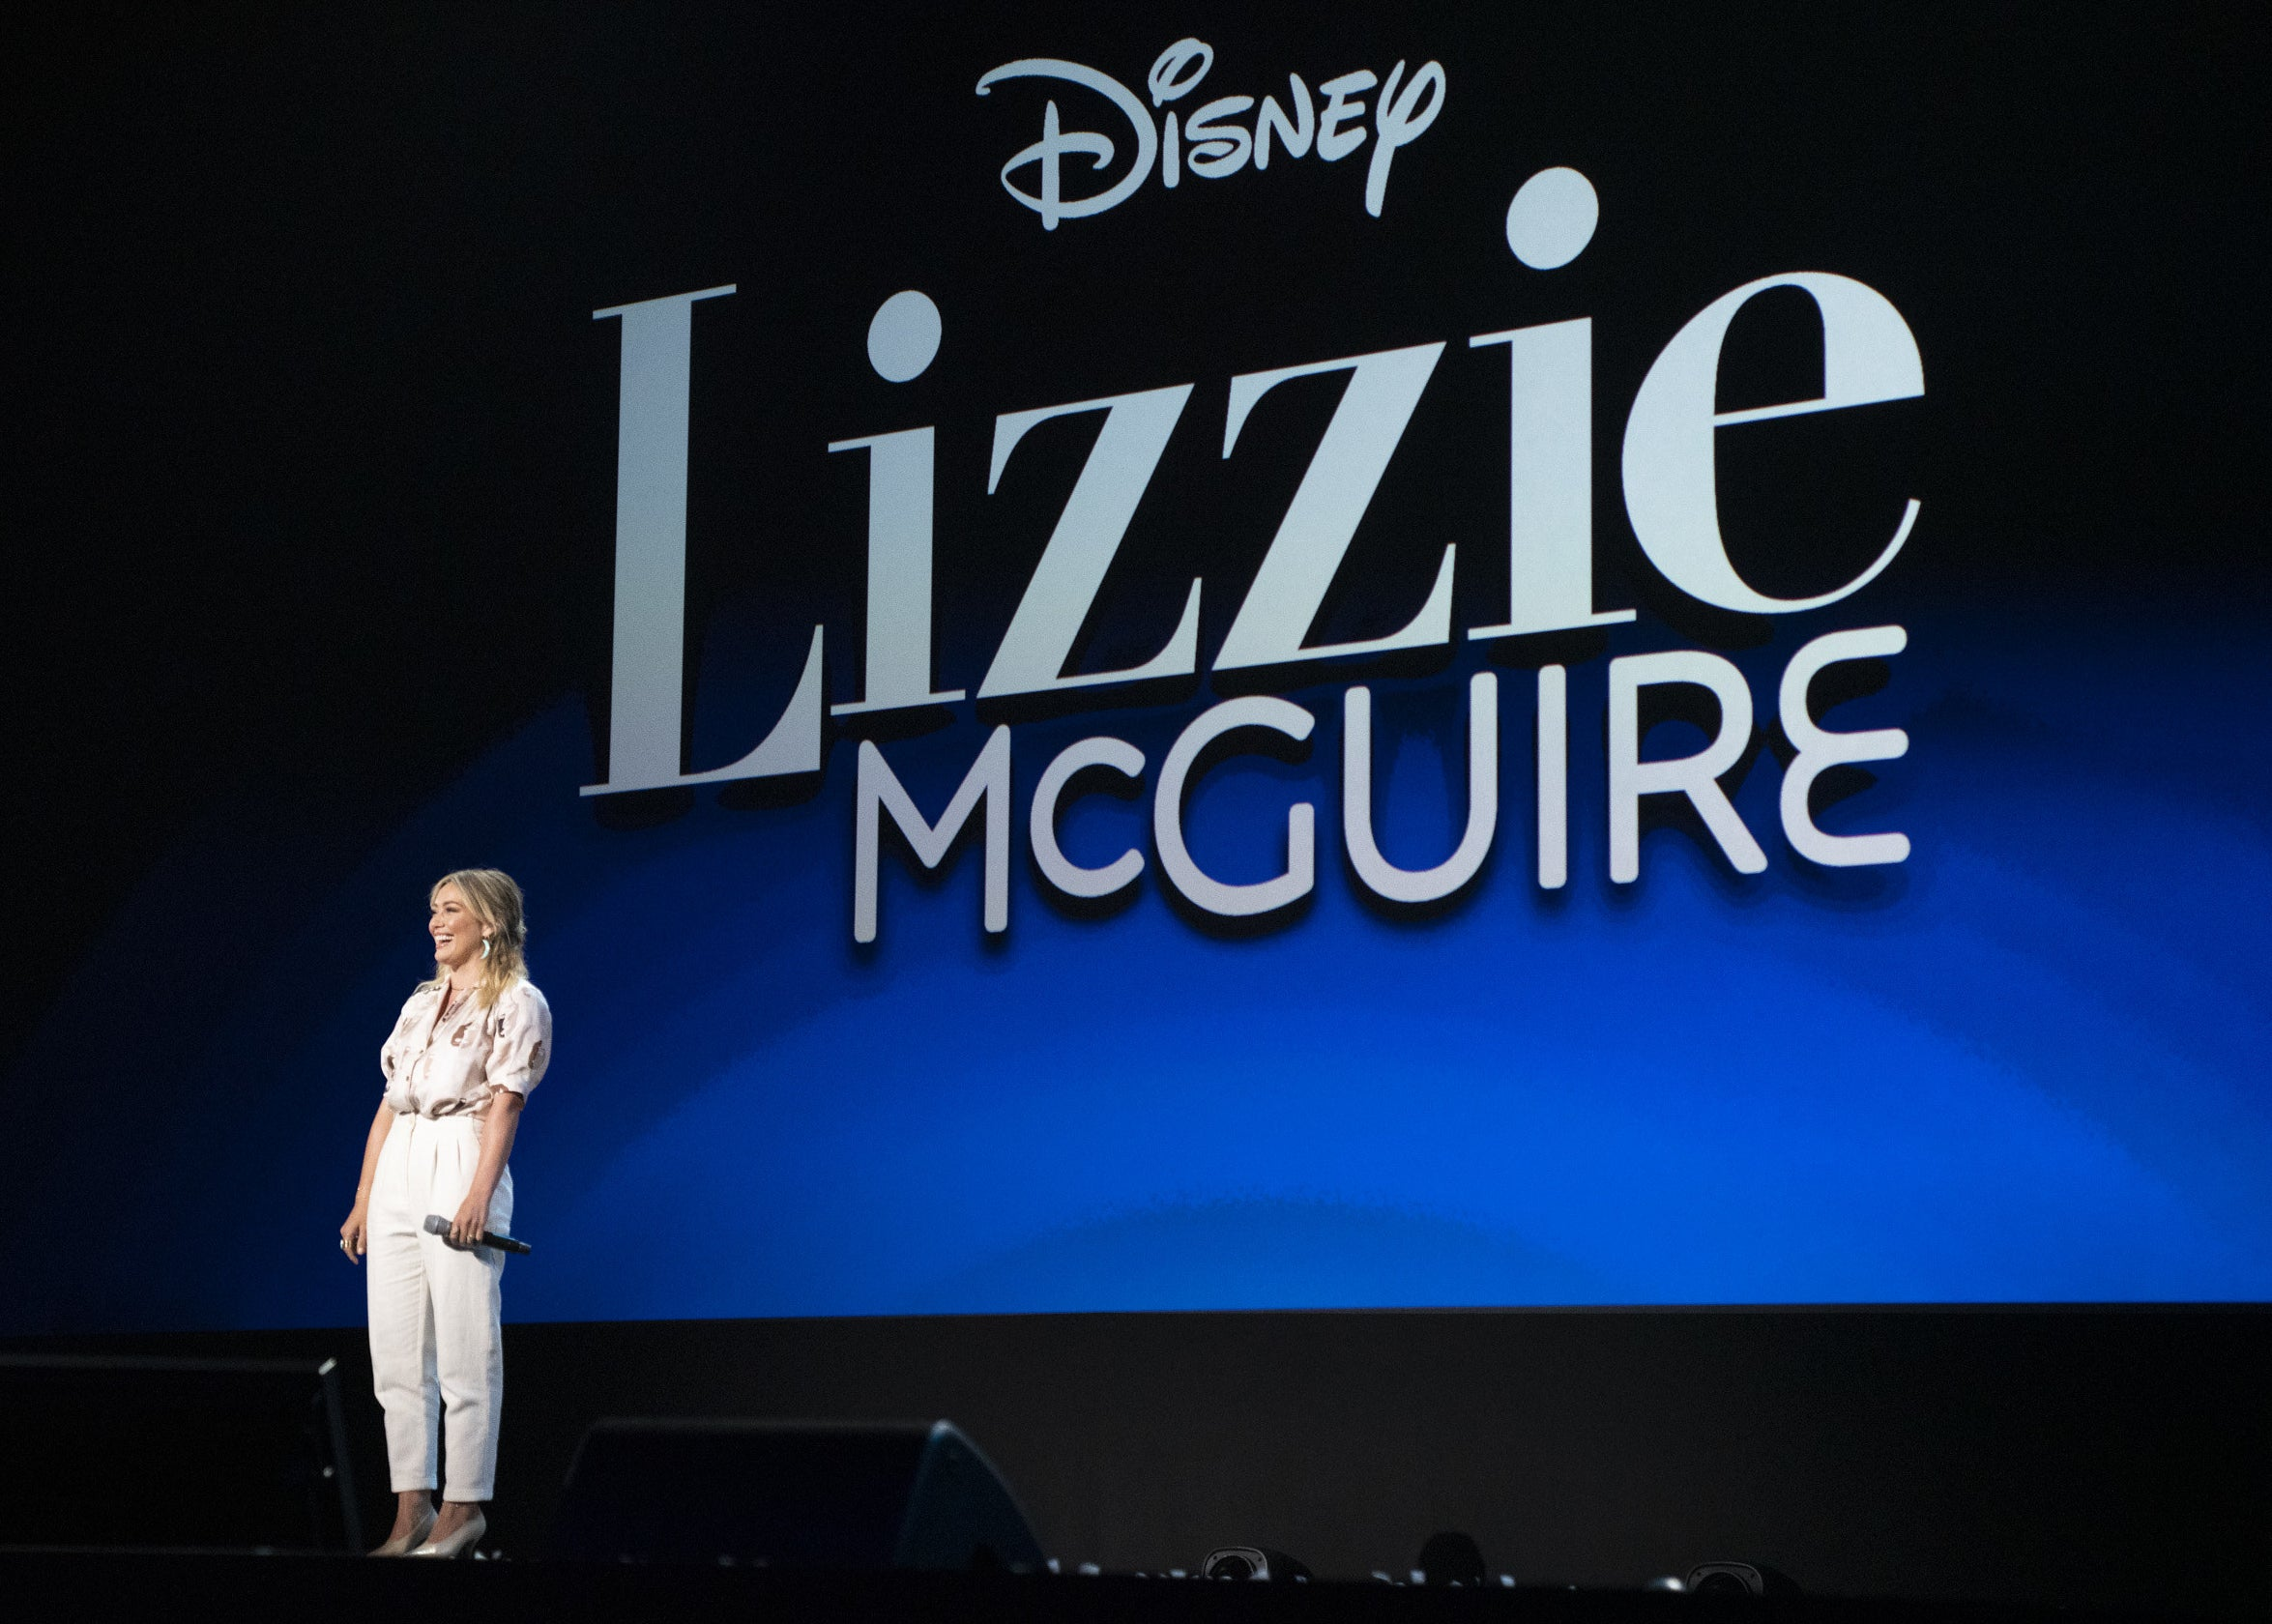 """Hilary stands on stage in front of the """"Lizzie McGuire"""" logo at a Disney event"""